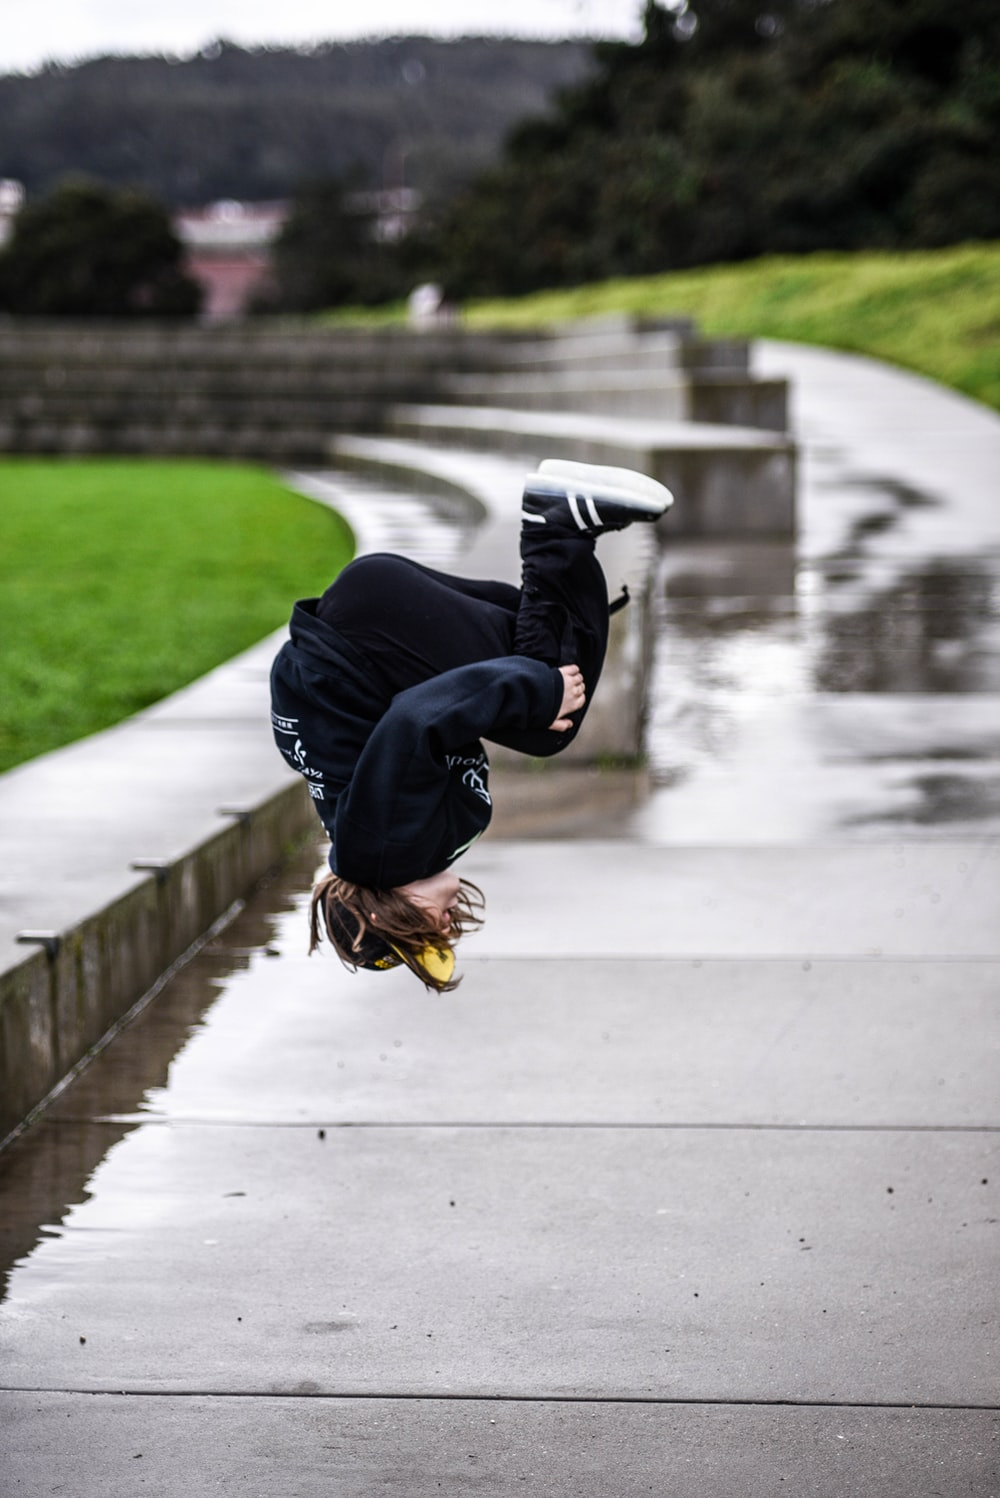 person wears black jacket and black pants doing flip on gray concrete walkway with water during daytime selective focus photography